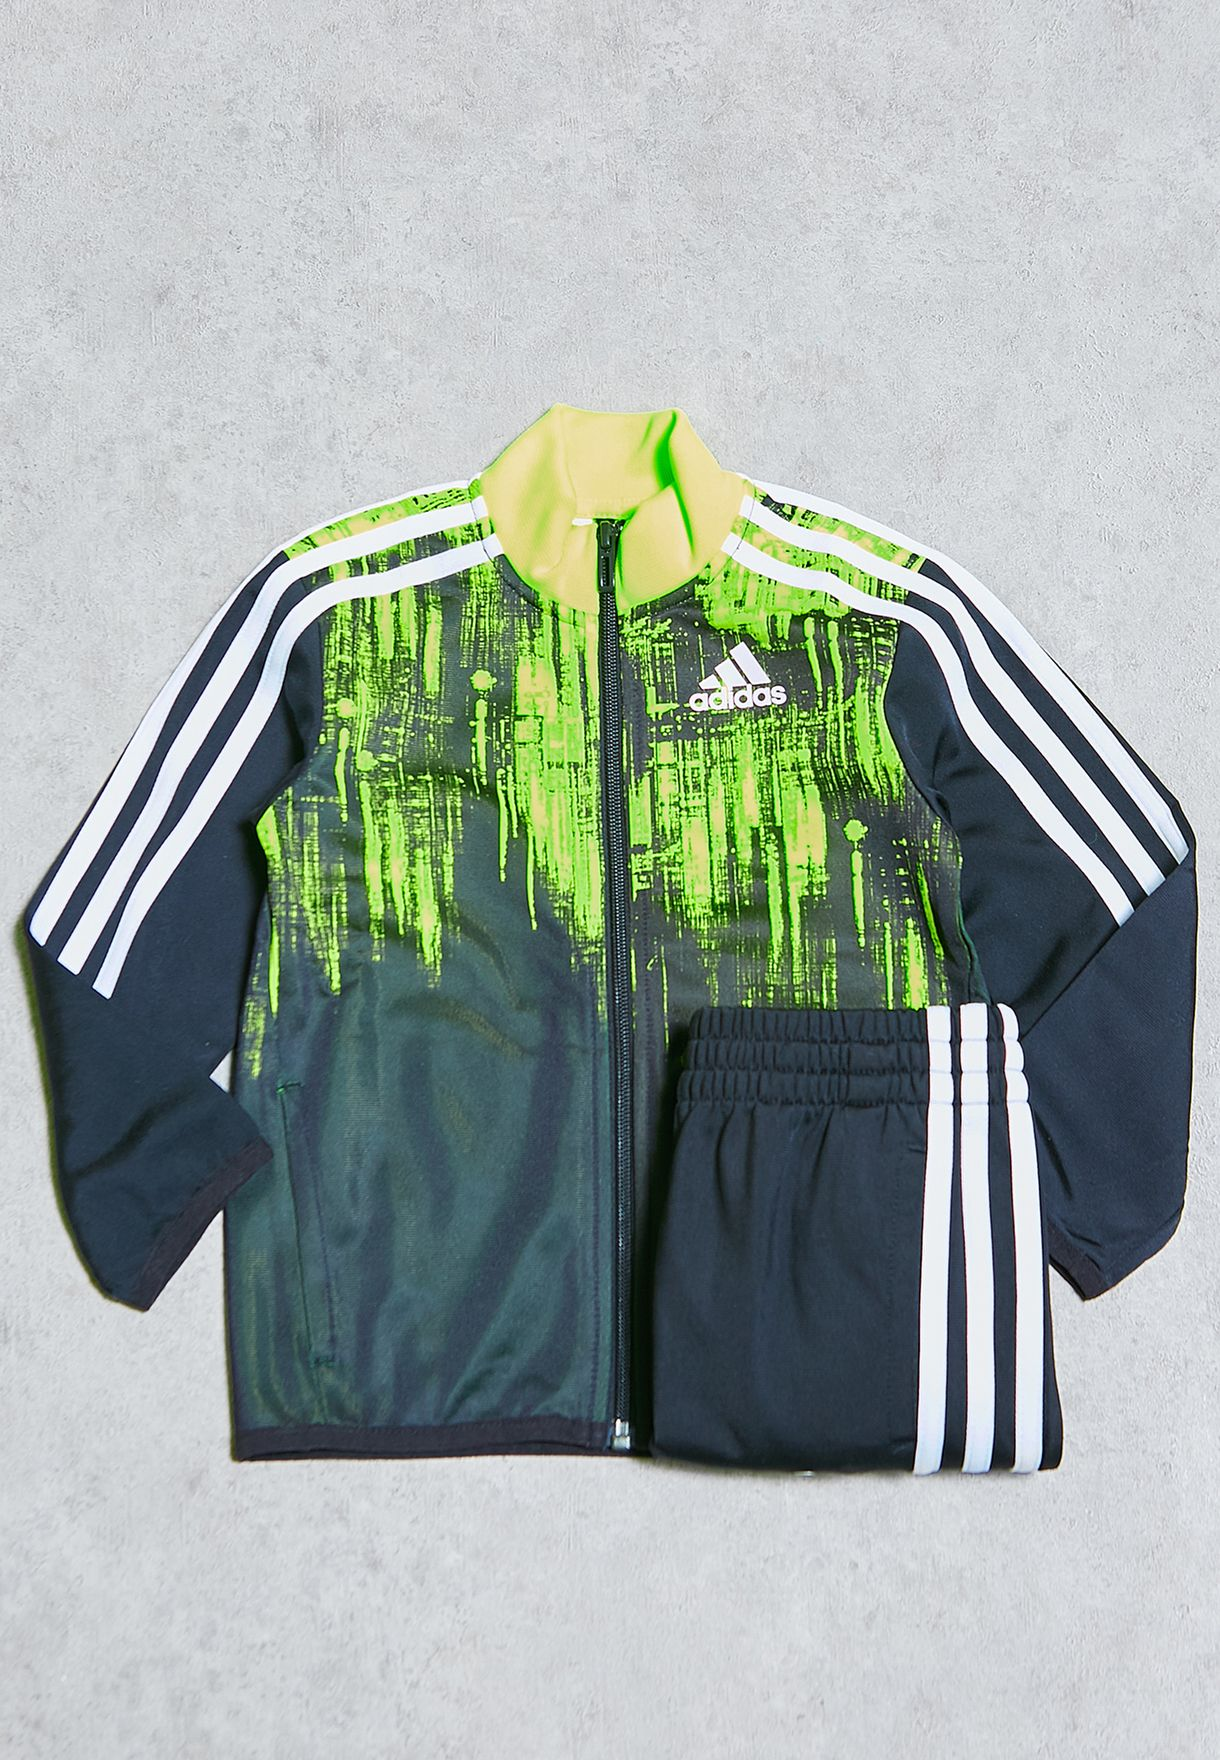 c3a2182f Shop adidas black Youth Tiro Tracksuit AX6345 for Kids in Kuwait ...